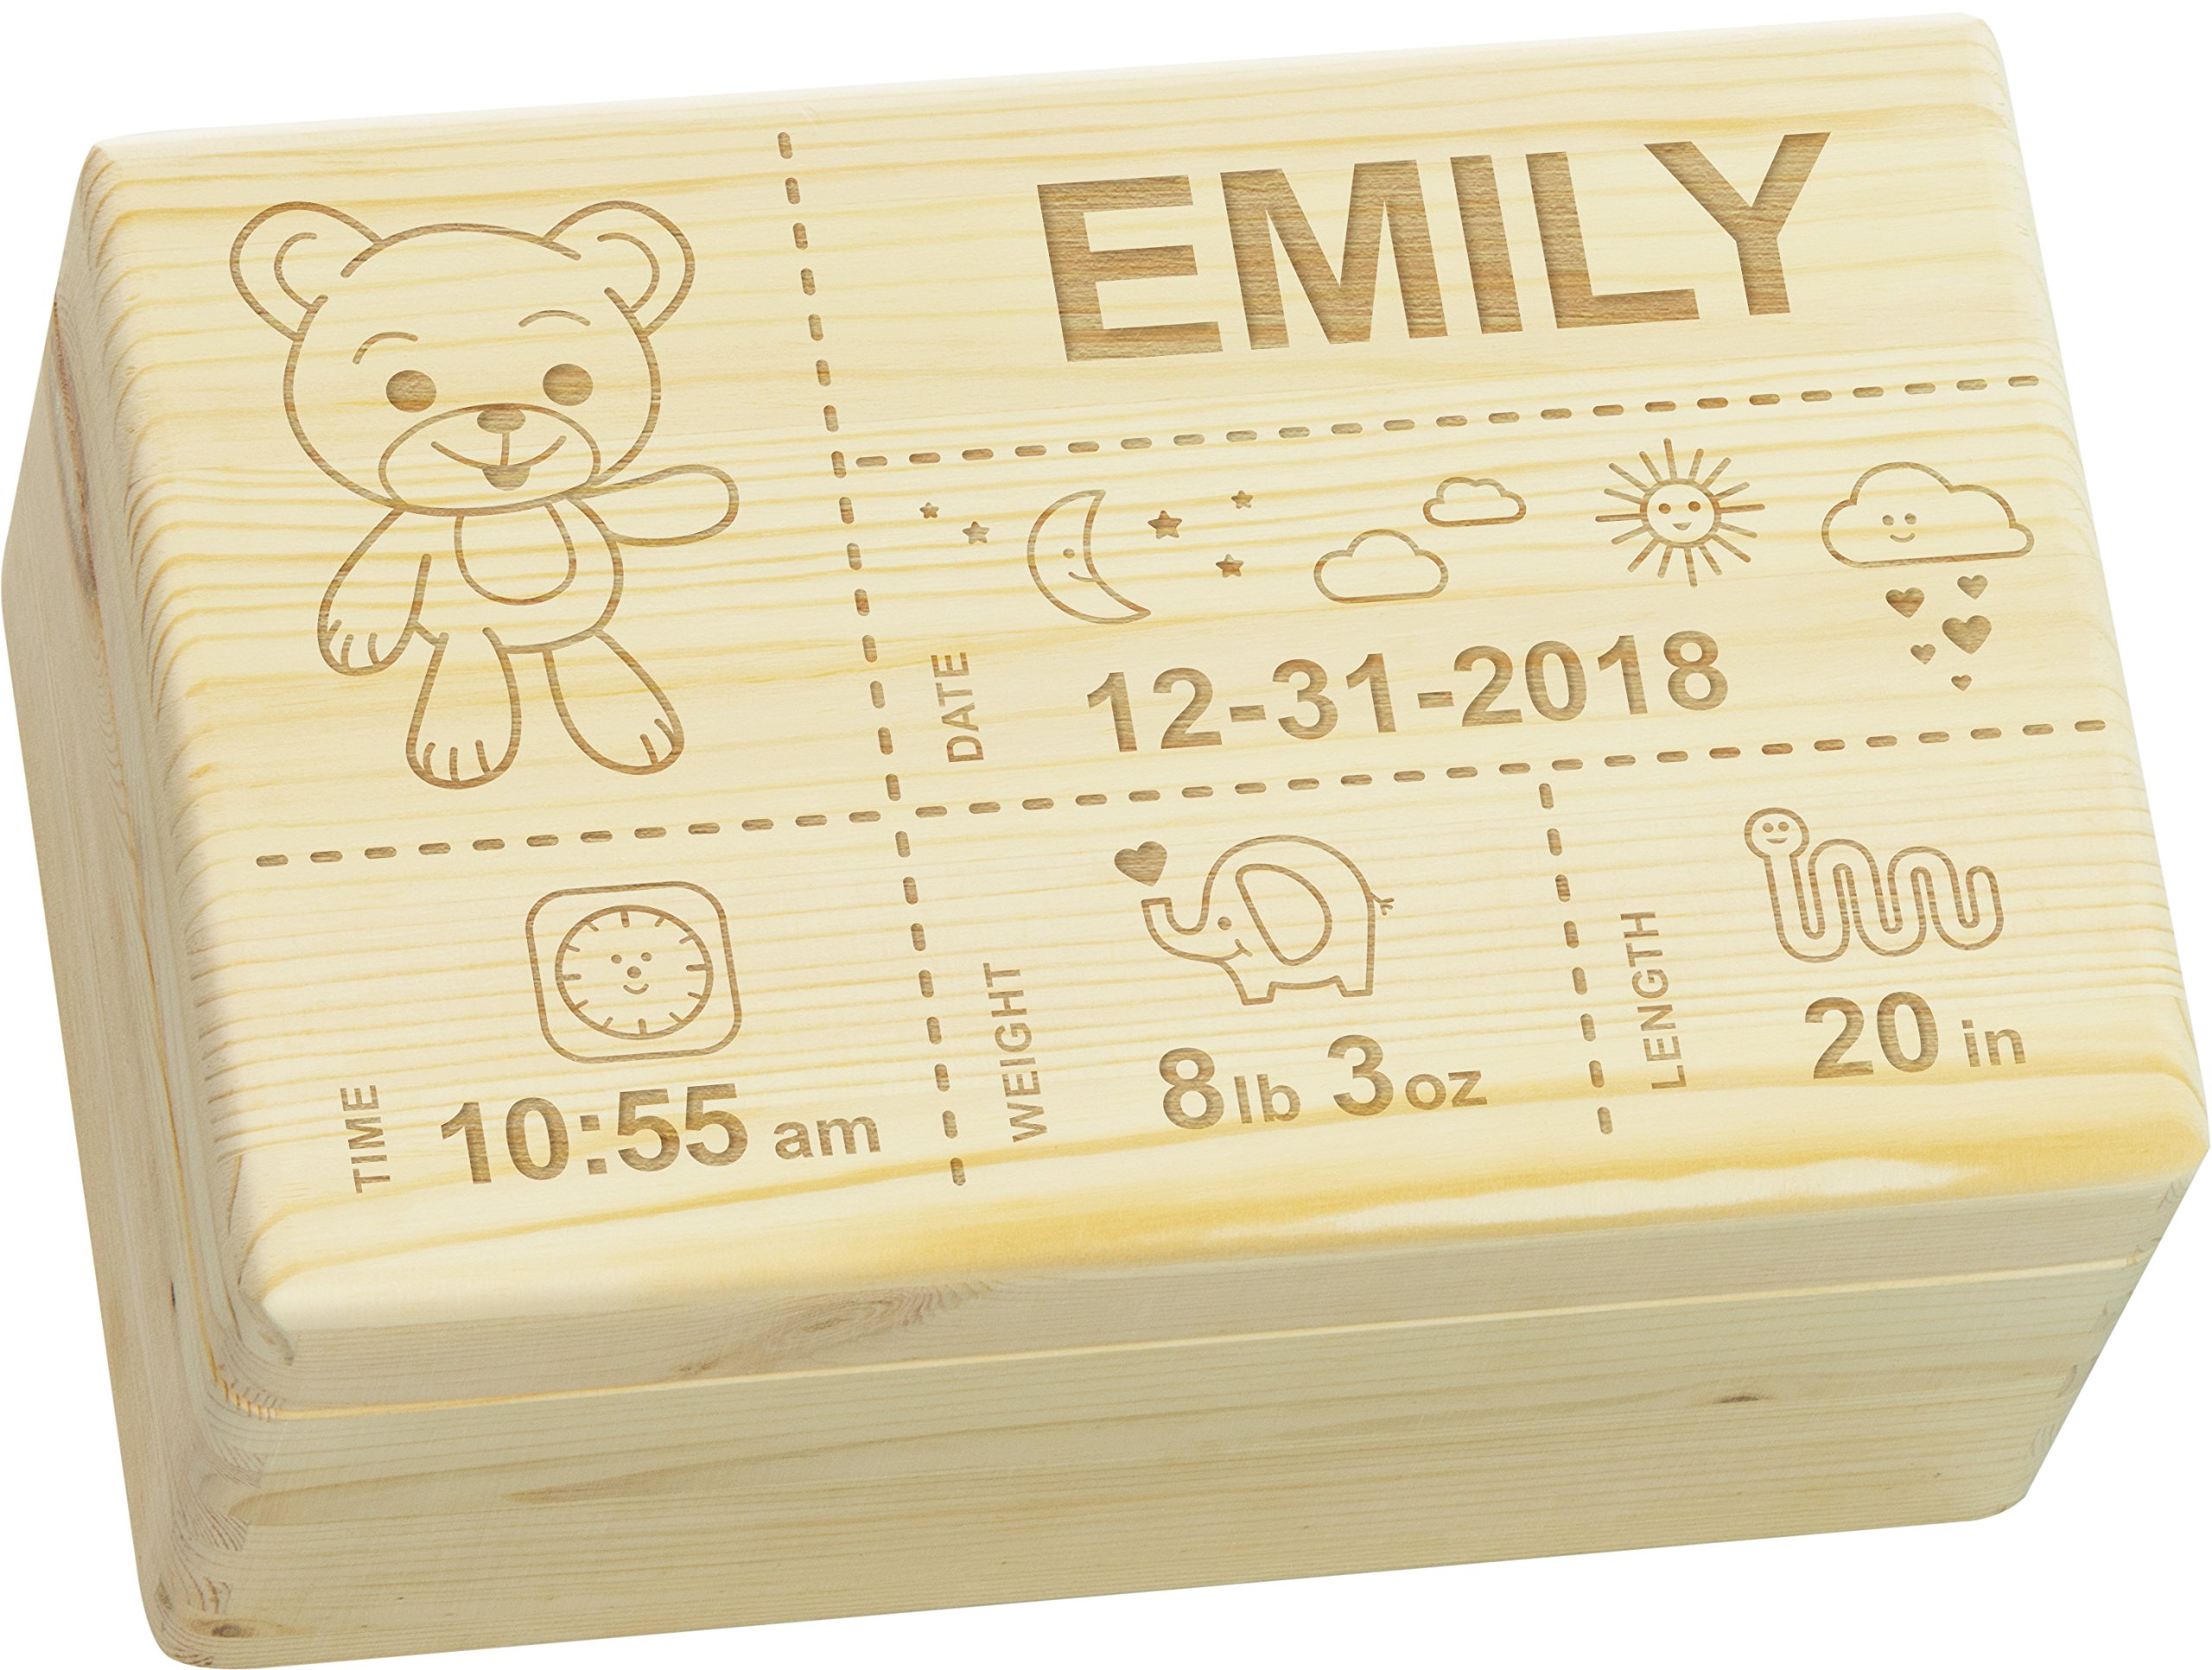 LAUBLUST Engraved Wooden Memory Box - Size L, 12x8x6in - ❤️ Personalized ❤️ Baby Keepsake Box - Teddy Design | Natural Wood - Made in Germany by LAUBLUST